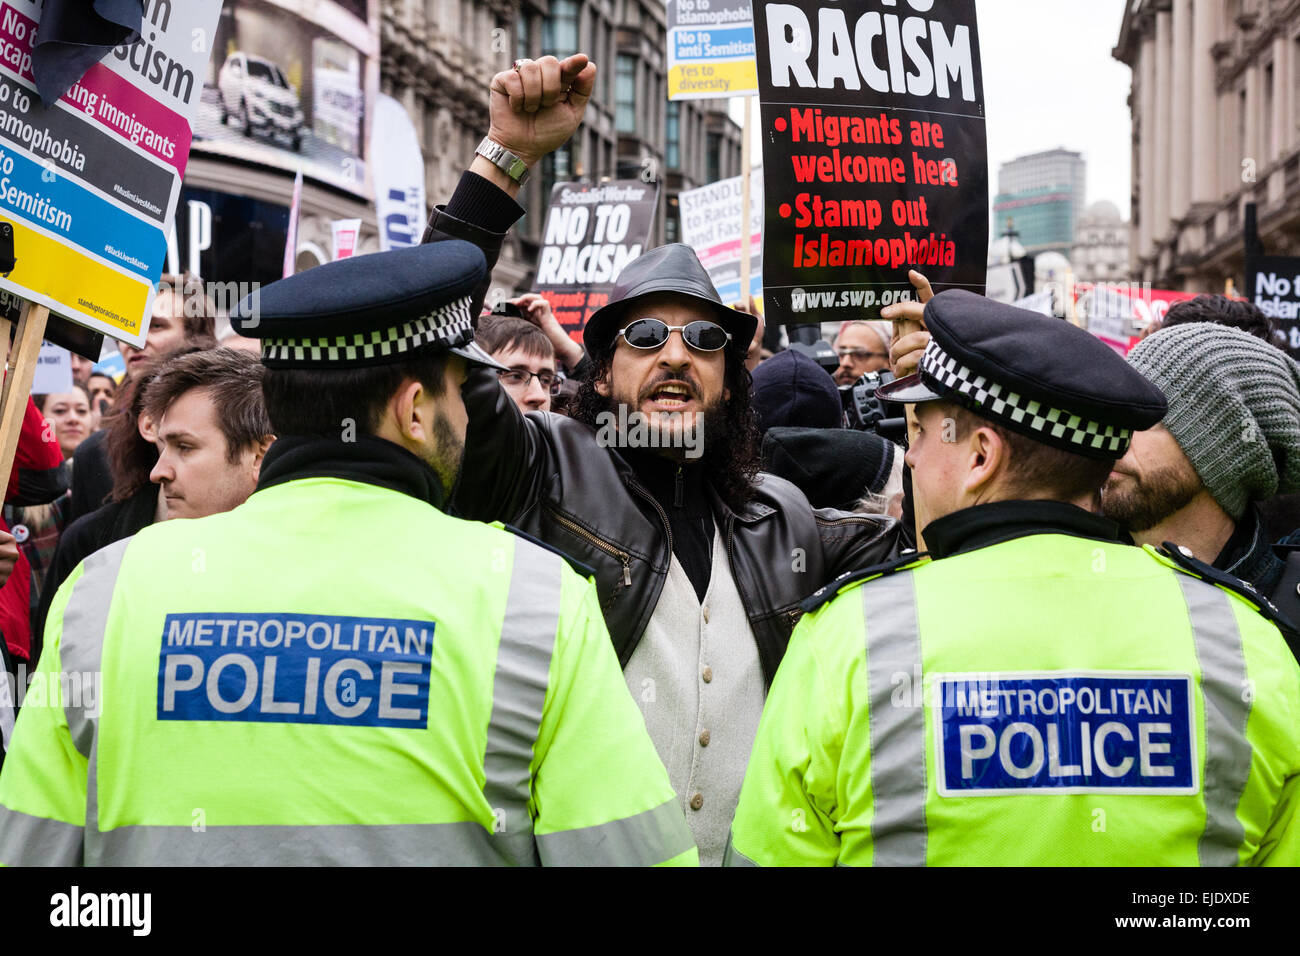 An anti-racism demonstrator shouts towards supporters of far-right group Britain First during a rally in central - Stock Image